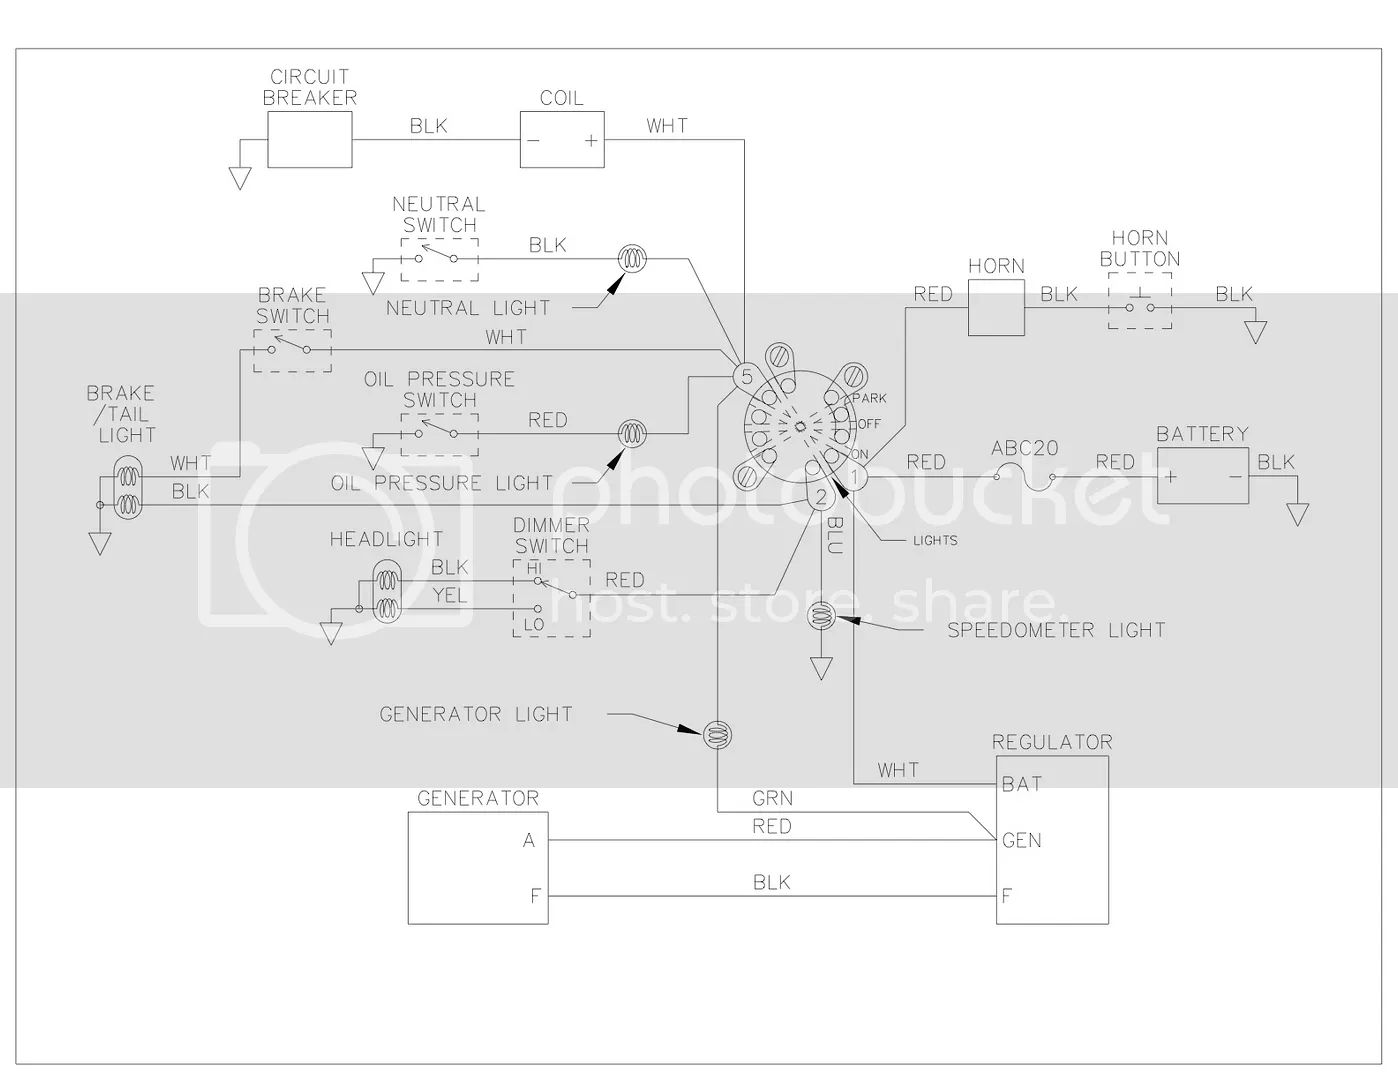 need a simplified 5 pole ignition switch wiring diagram harley